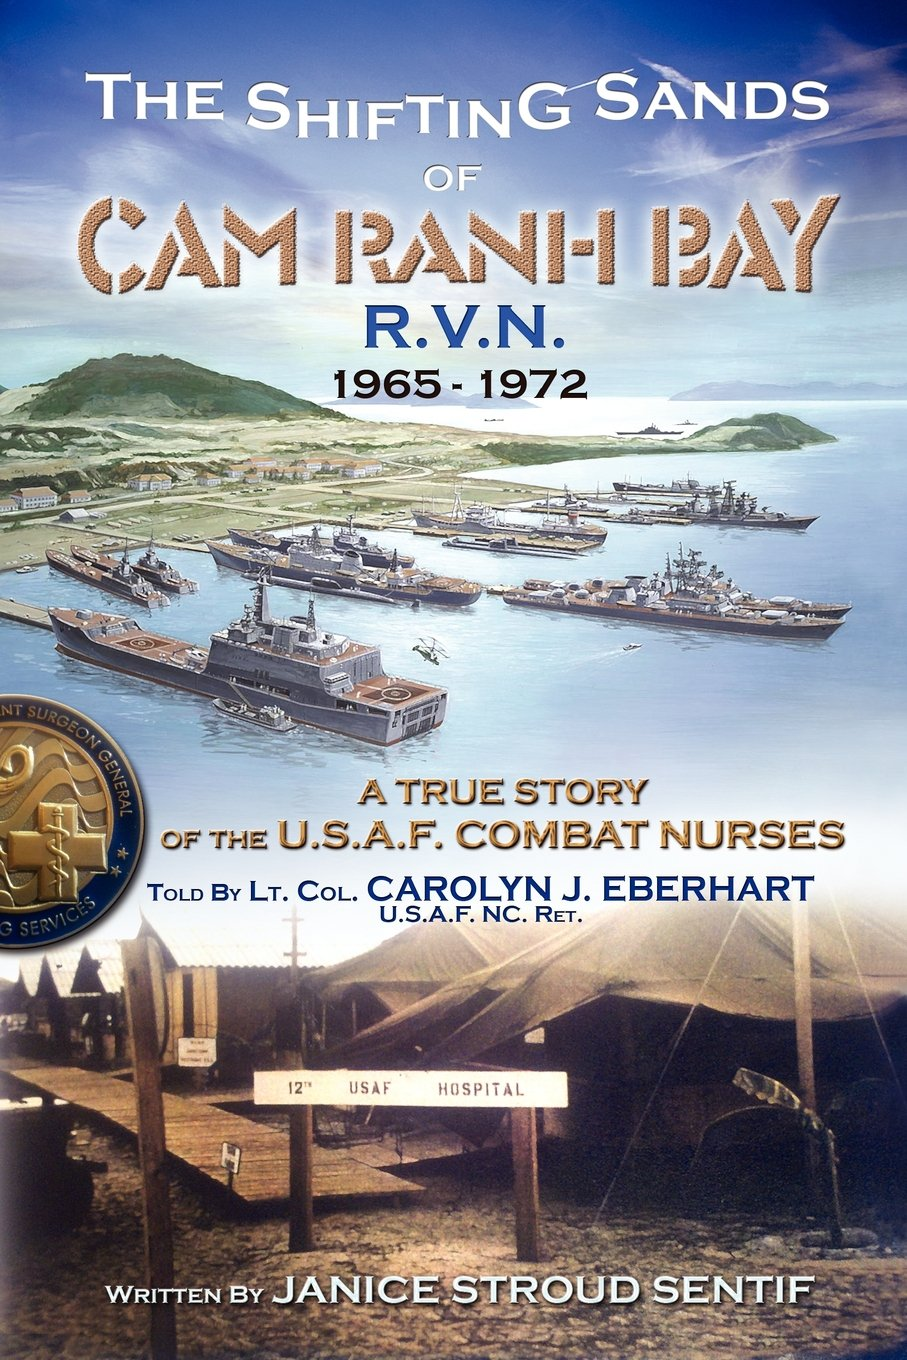 Download The Shifting Sands Of Cam Ranh Bay: R.V.N.  1965-1972  – A True Story Of The U.S. Air Force Combat Nurses (Volume 1) PDF